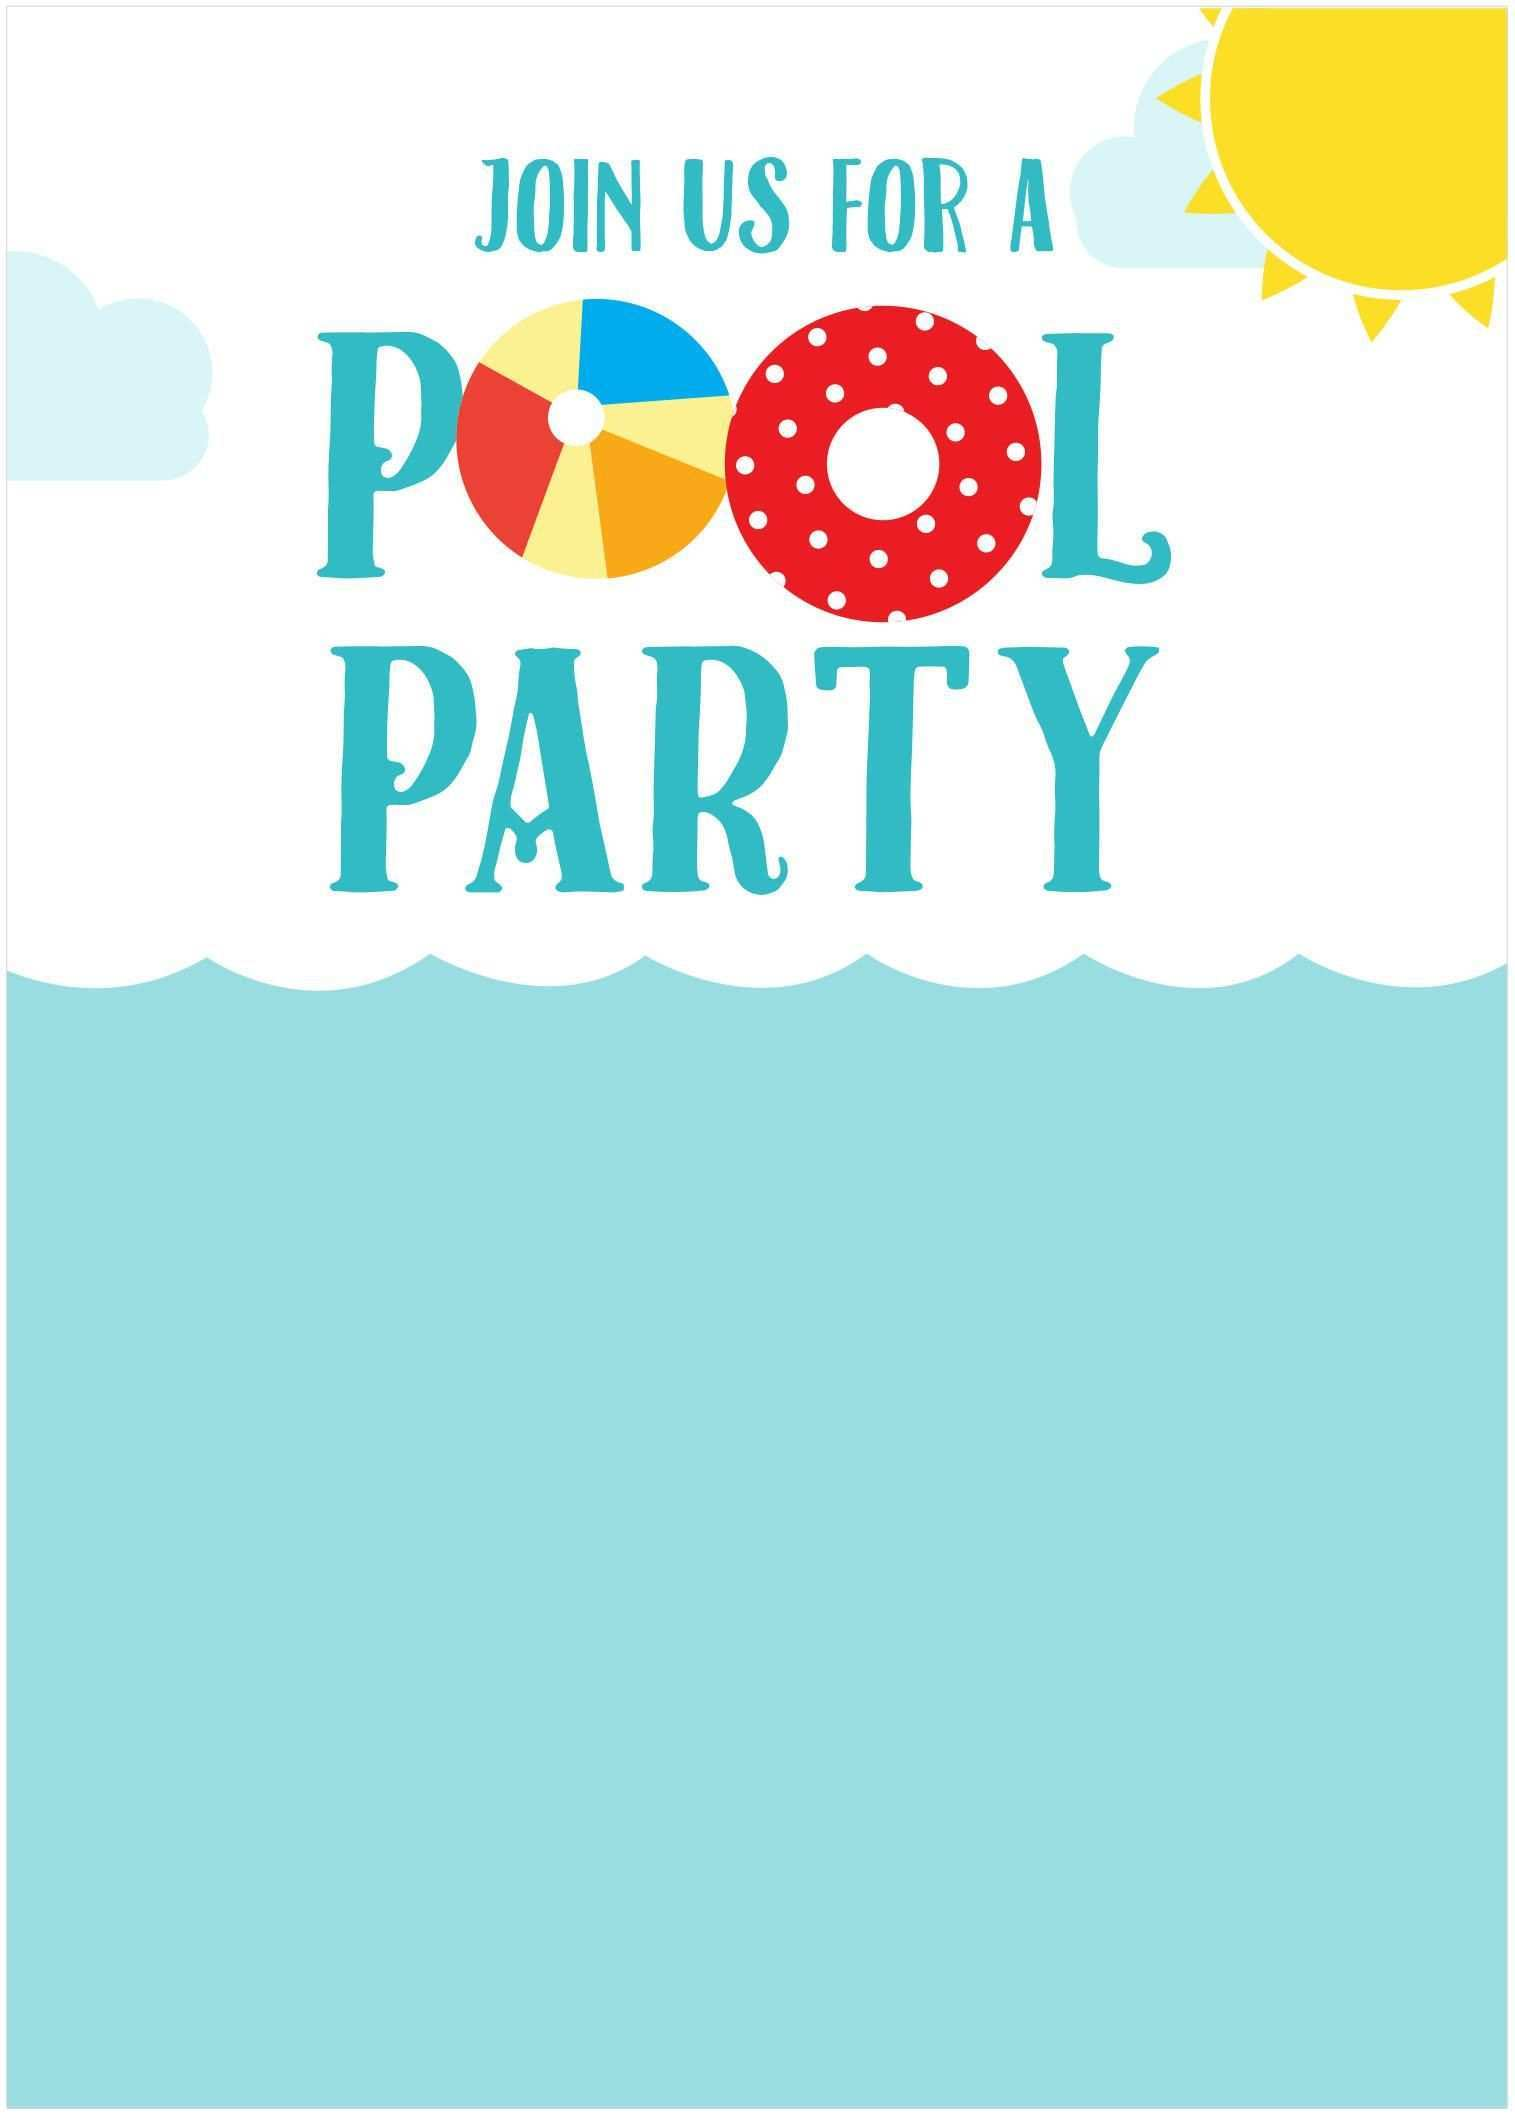 41 Adding Childrens Party Invites Templates Uk in Word with Childrens Party Invites Templates Uk